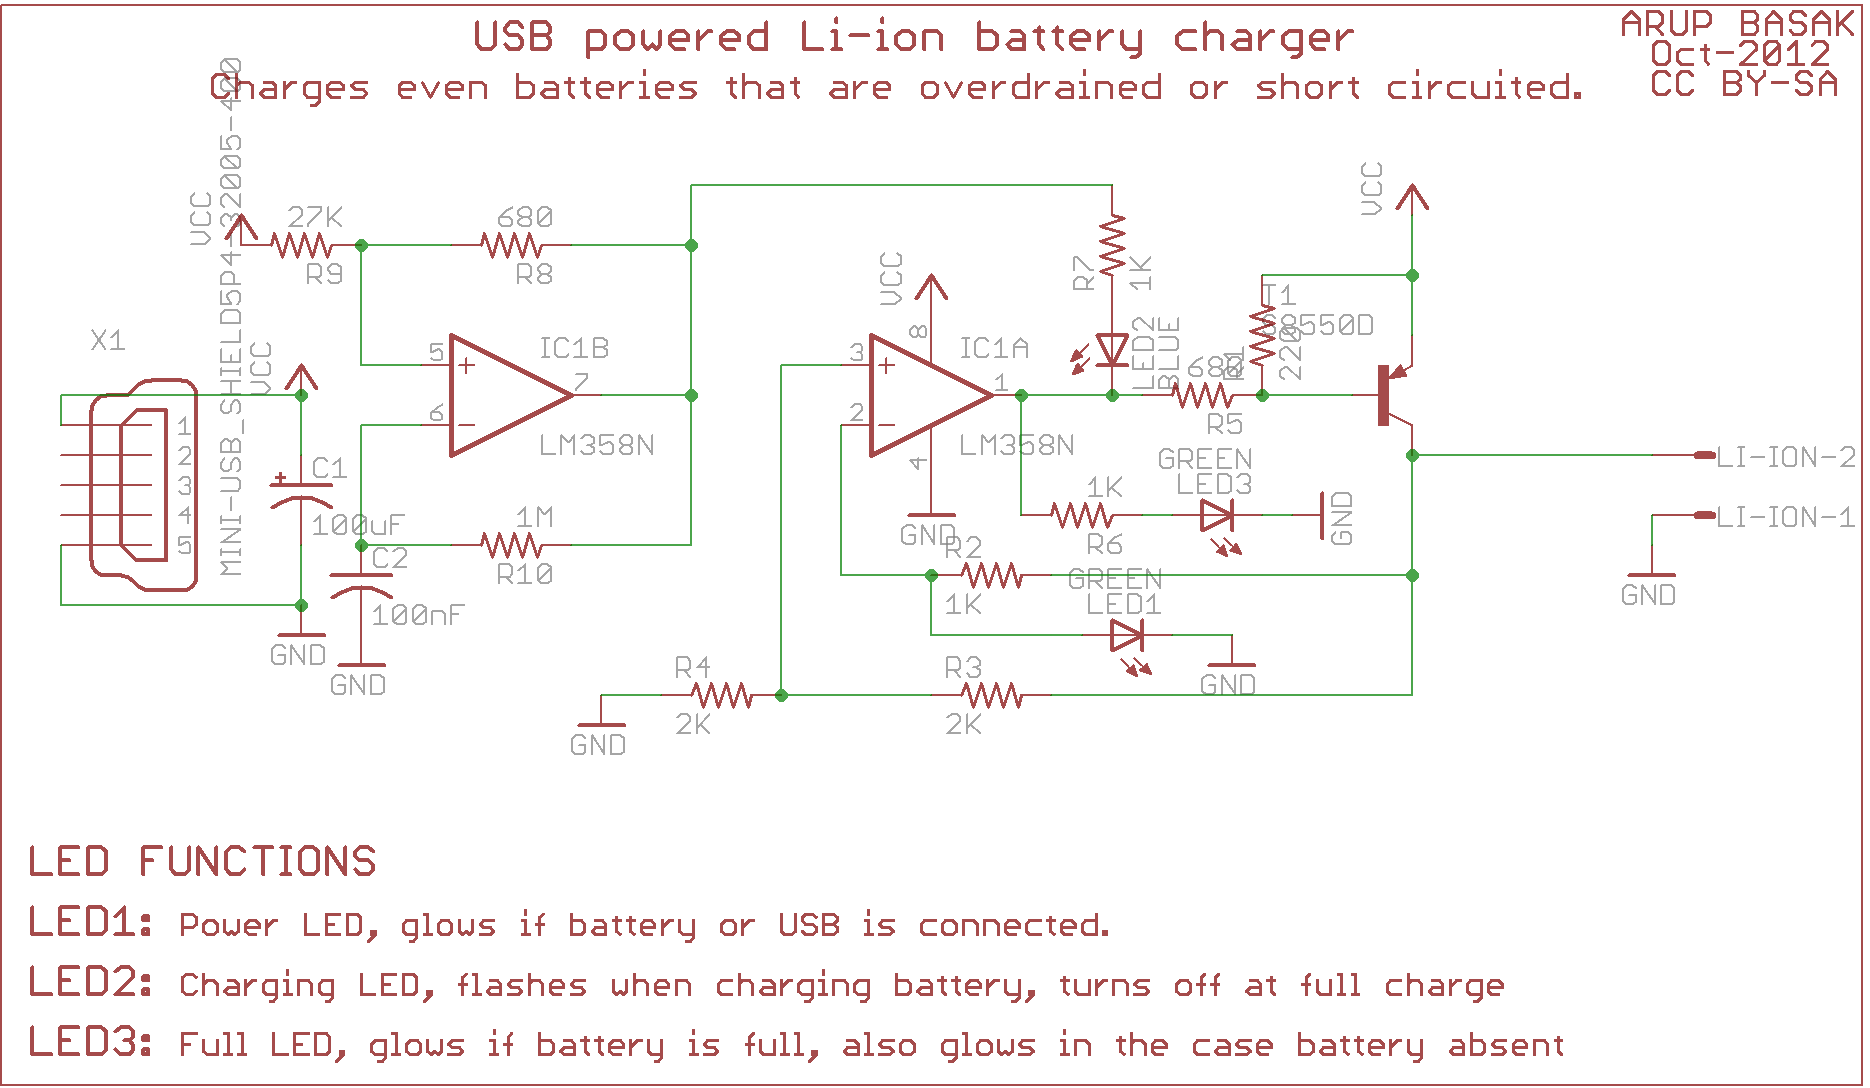 Diy Ev Car Charger Schematic further Li On Batarya Sarj Devresi together with Diy Bluetooth Headphones as well Incremental Conductance Type Solar Mppt further Usb Li Ion Charger. on simple lithium battery charger